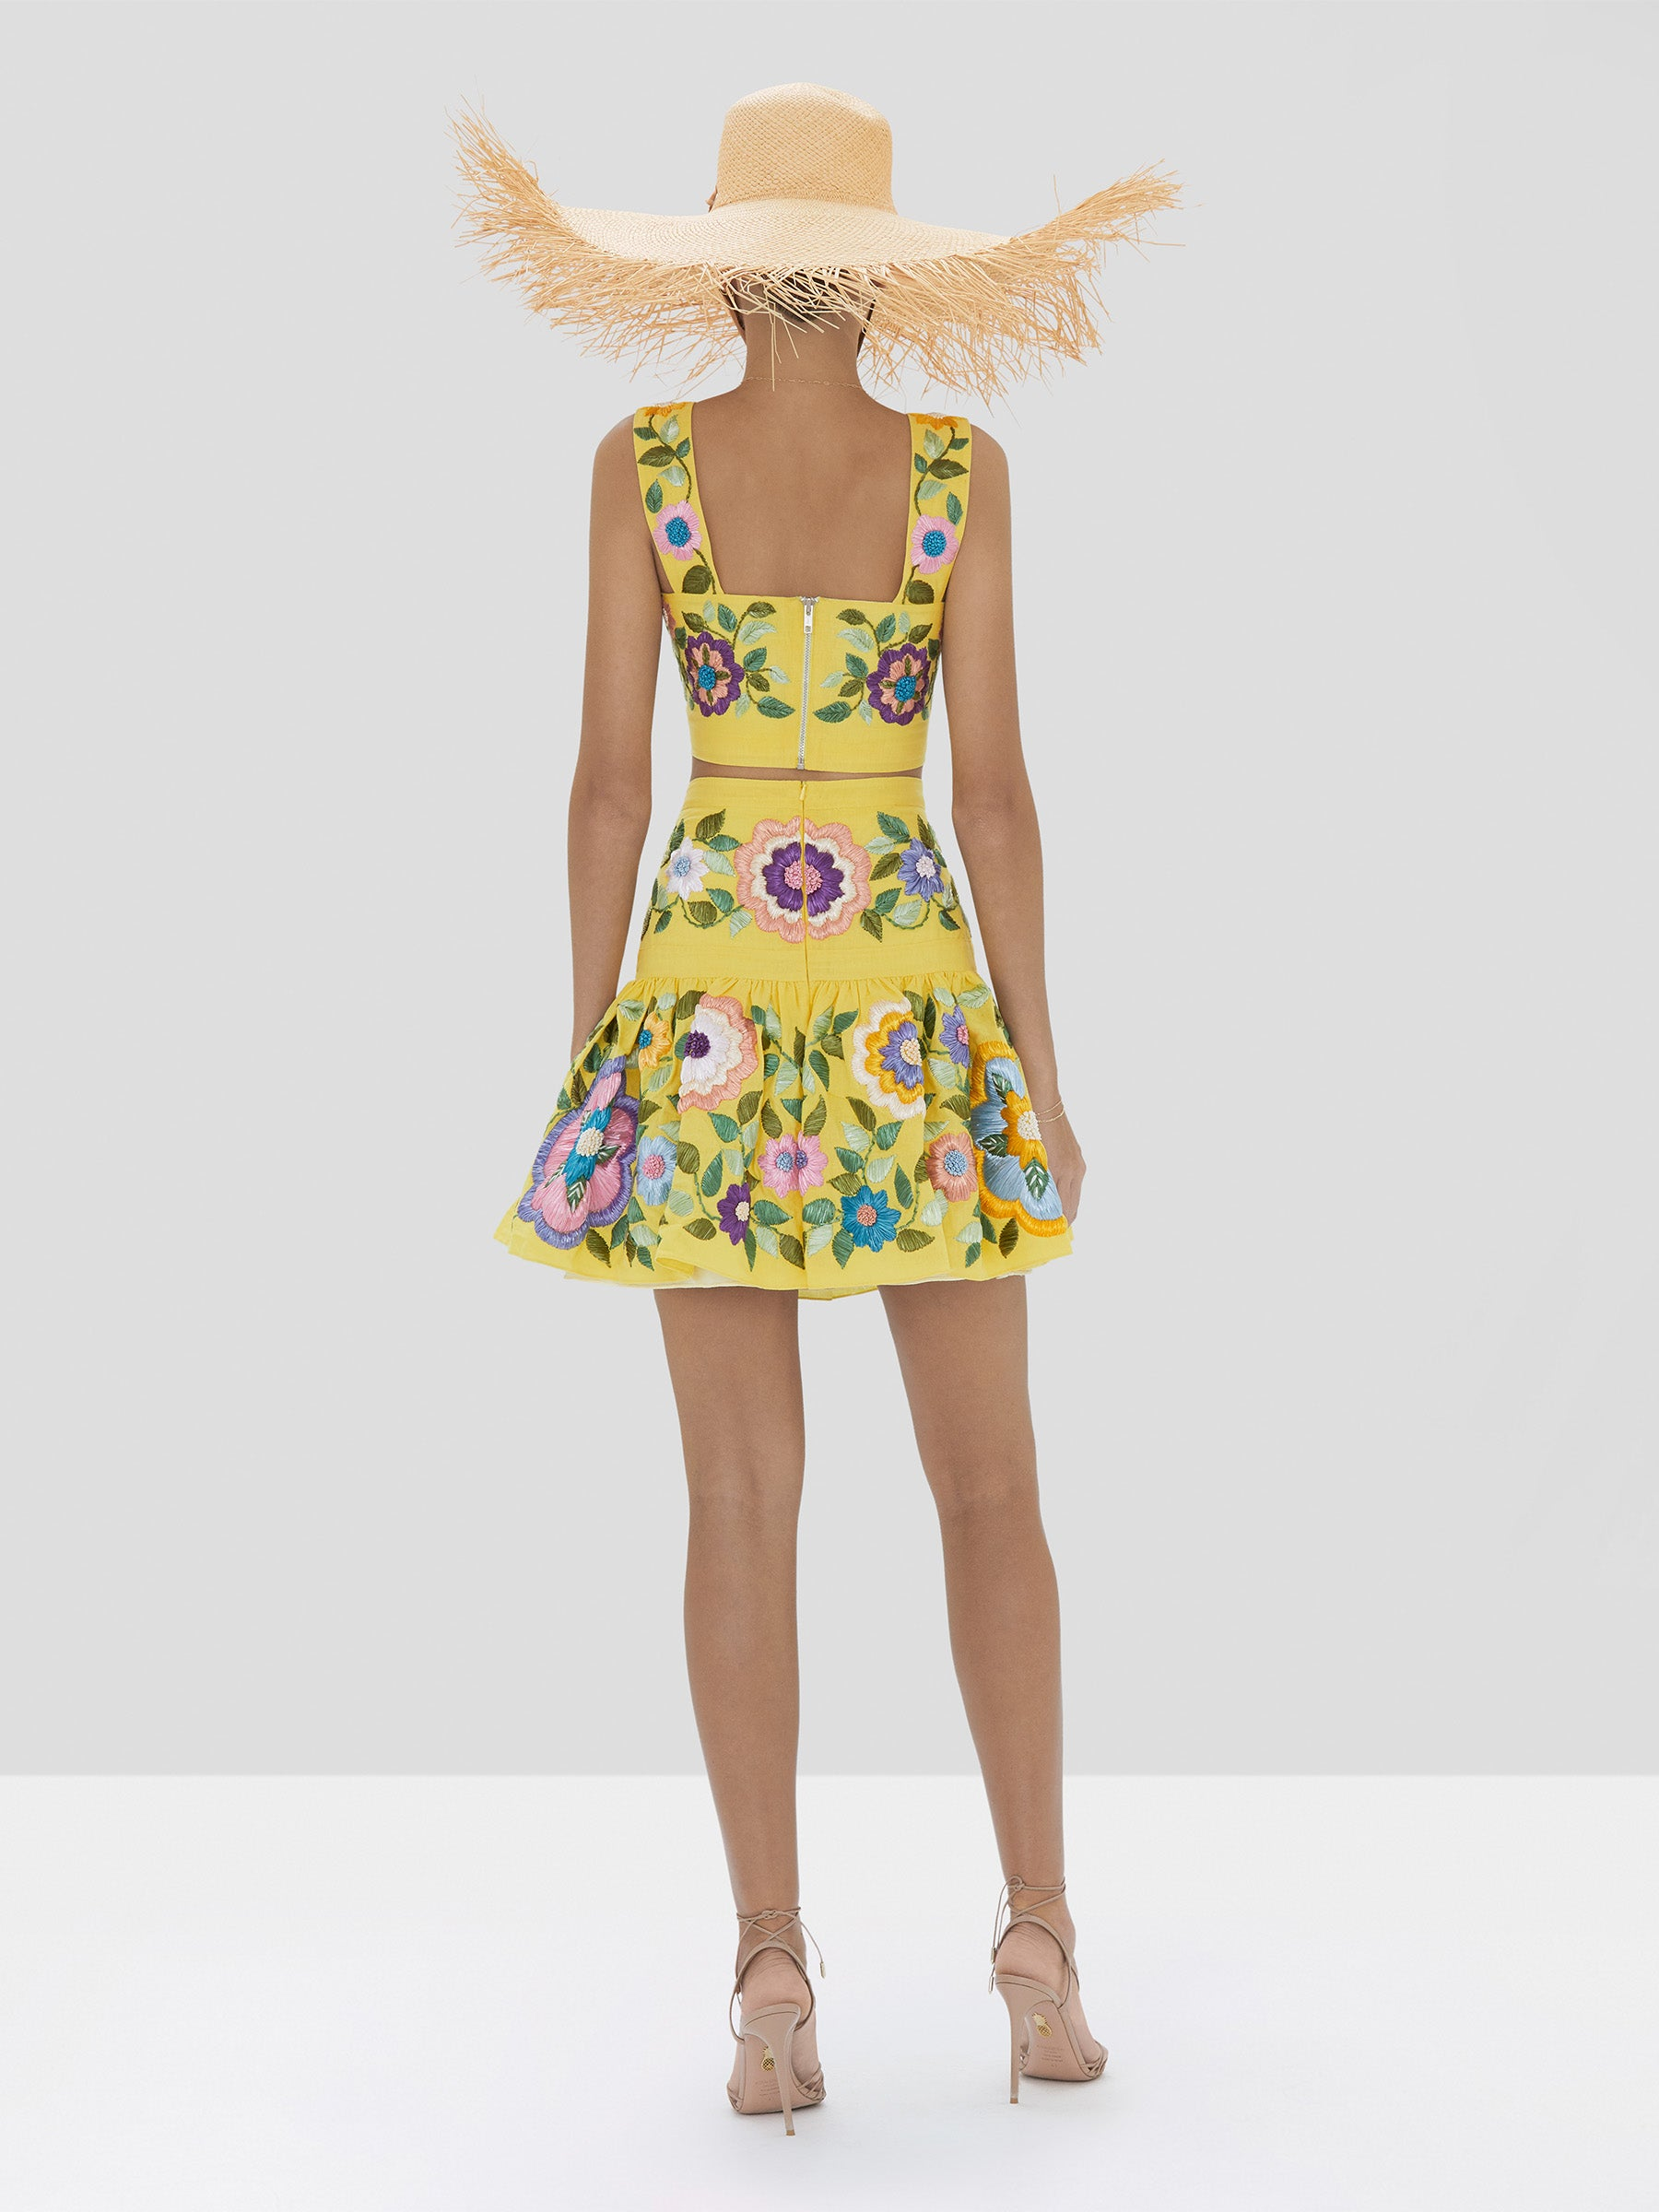 Alexis Bekki Crop Top and Kasandra Skirt in Blooming Floral from Spring Summer 2020 Collection - Rear View